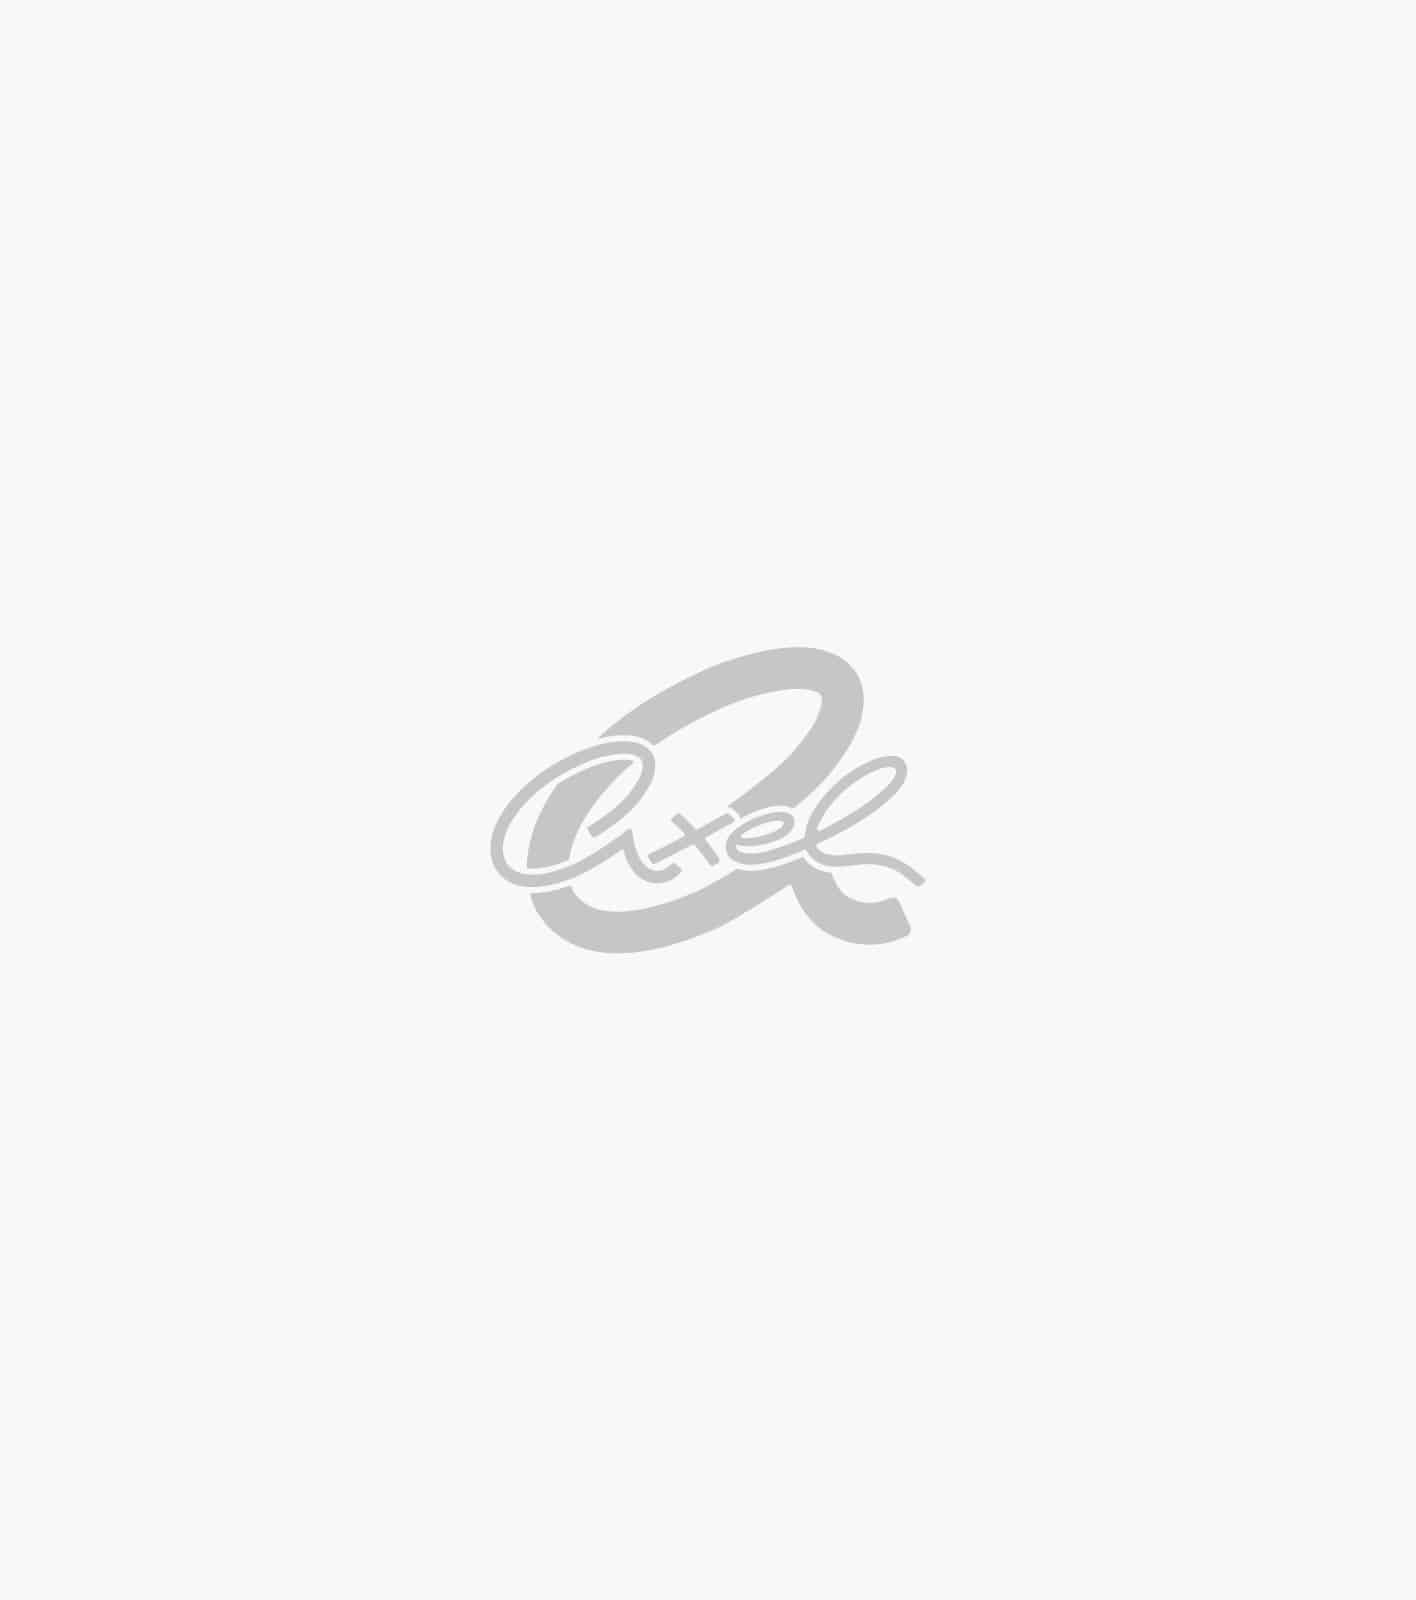 605f86fa14 AXEL WOMAN BAGS - COLLECTIONS - BAGS